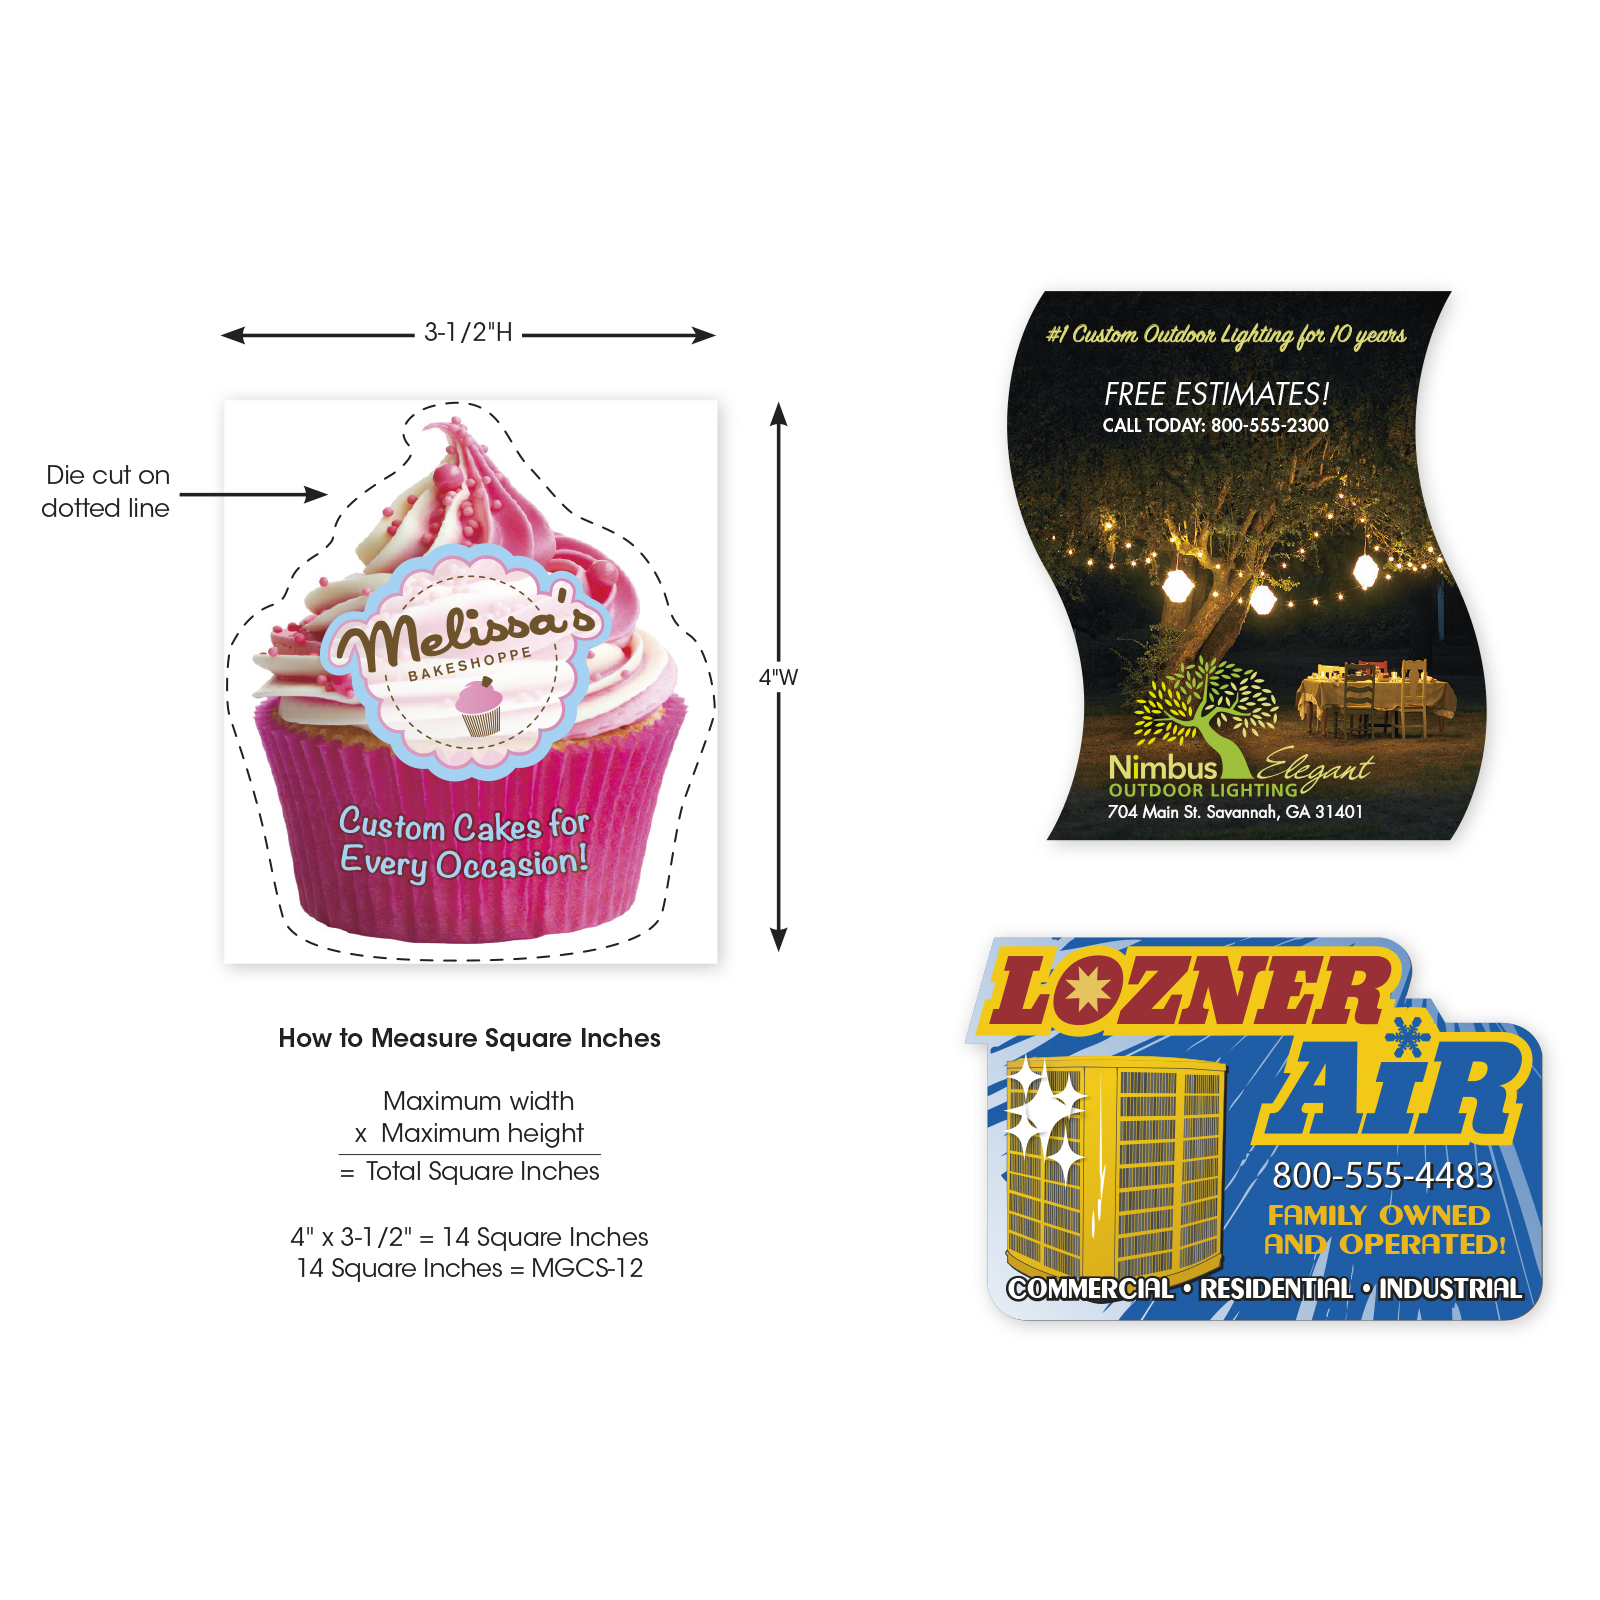 BIC Custom Shape Magnet 10.01 to 12 Square Inches - 20 Mil, #MGCS20-10, Full Colour Imprint